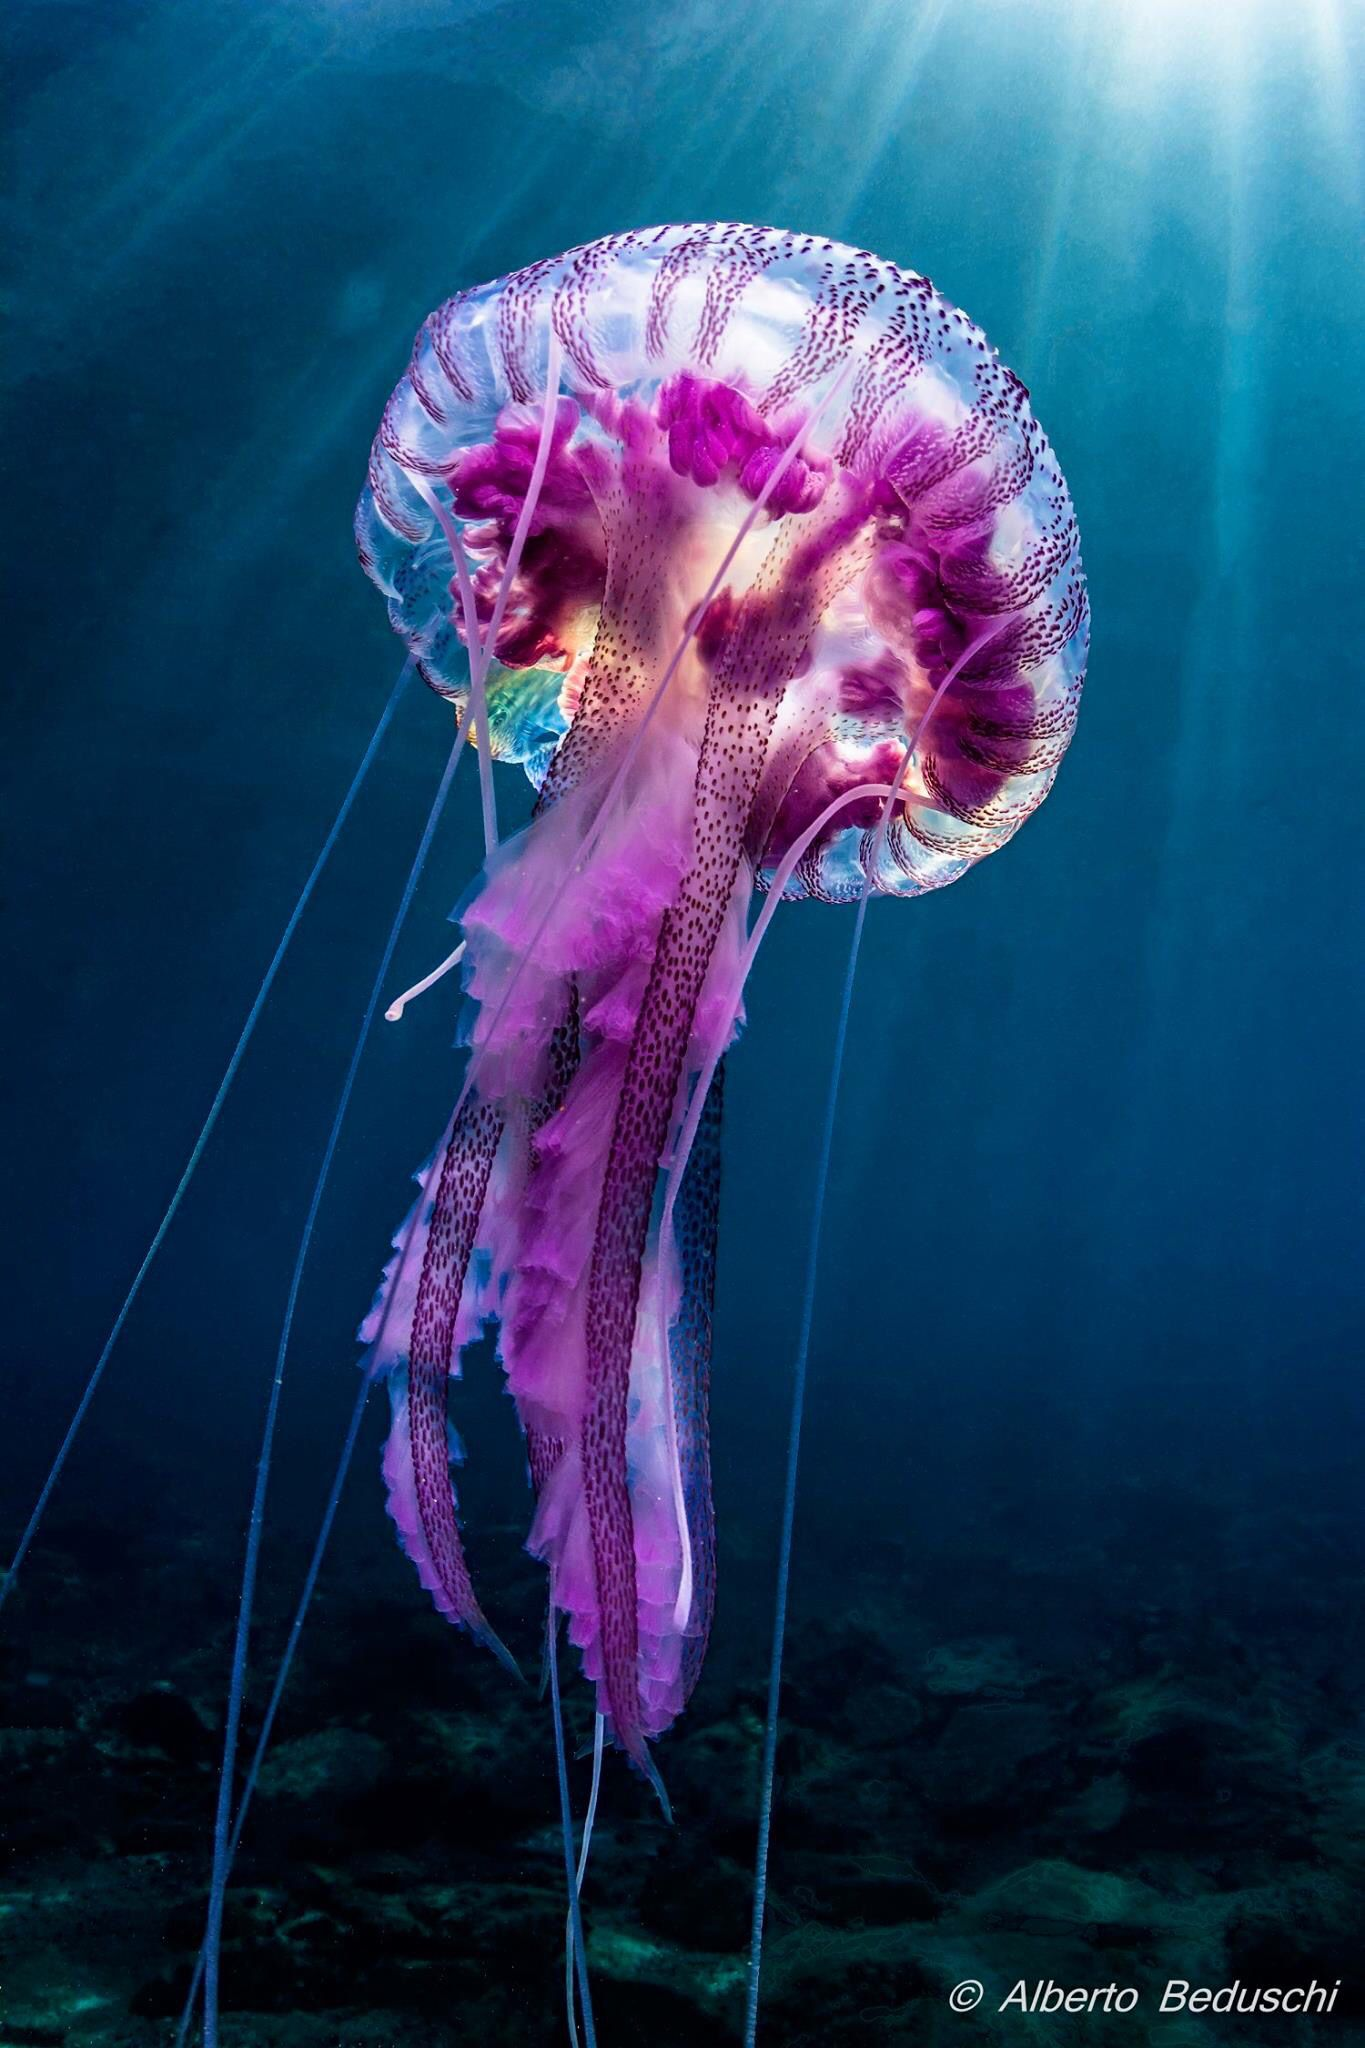 Best 25 jellyfish ideas on pinterest jelly fish water - Jellyfish hd images ...